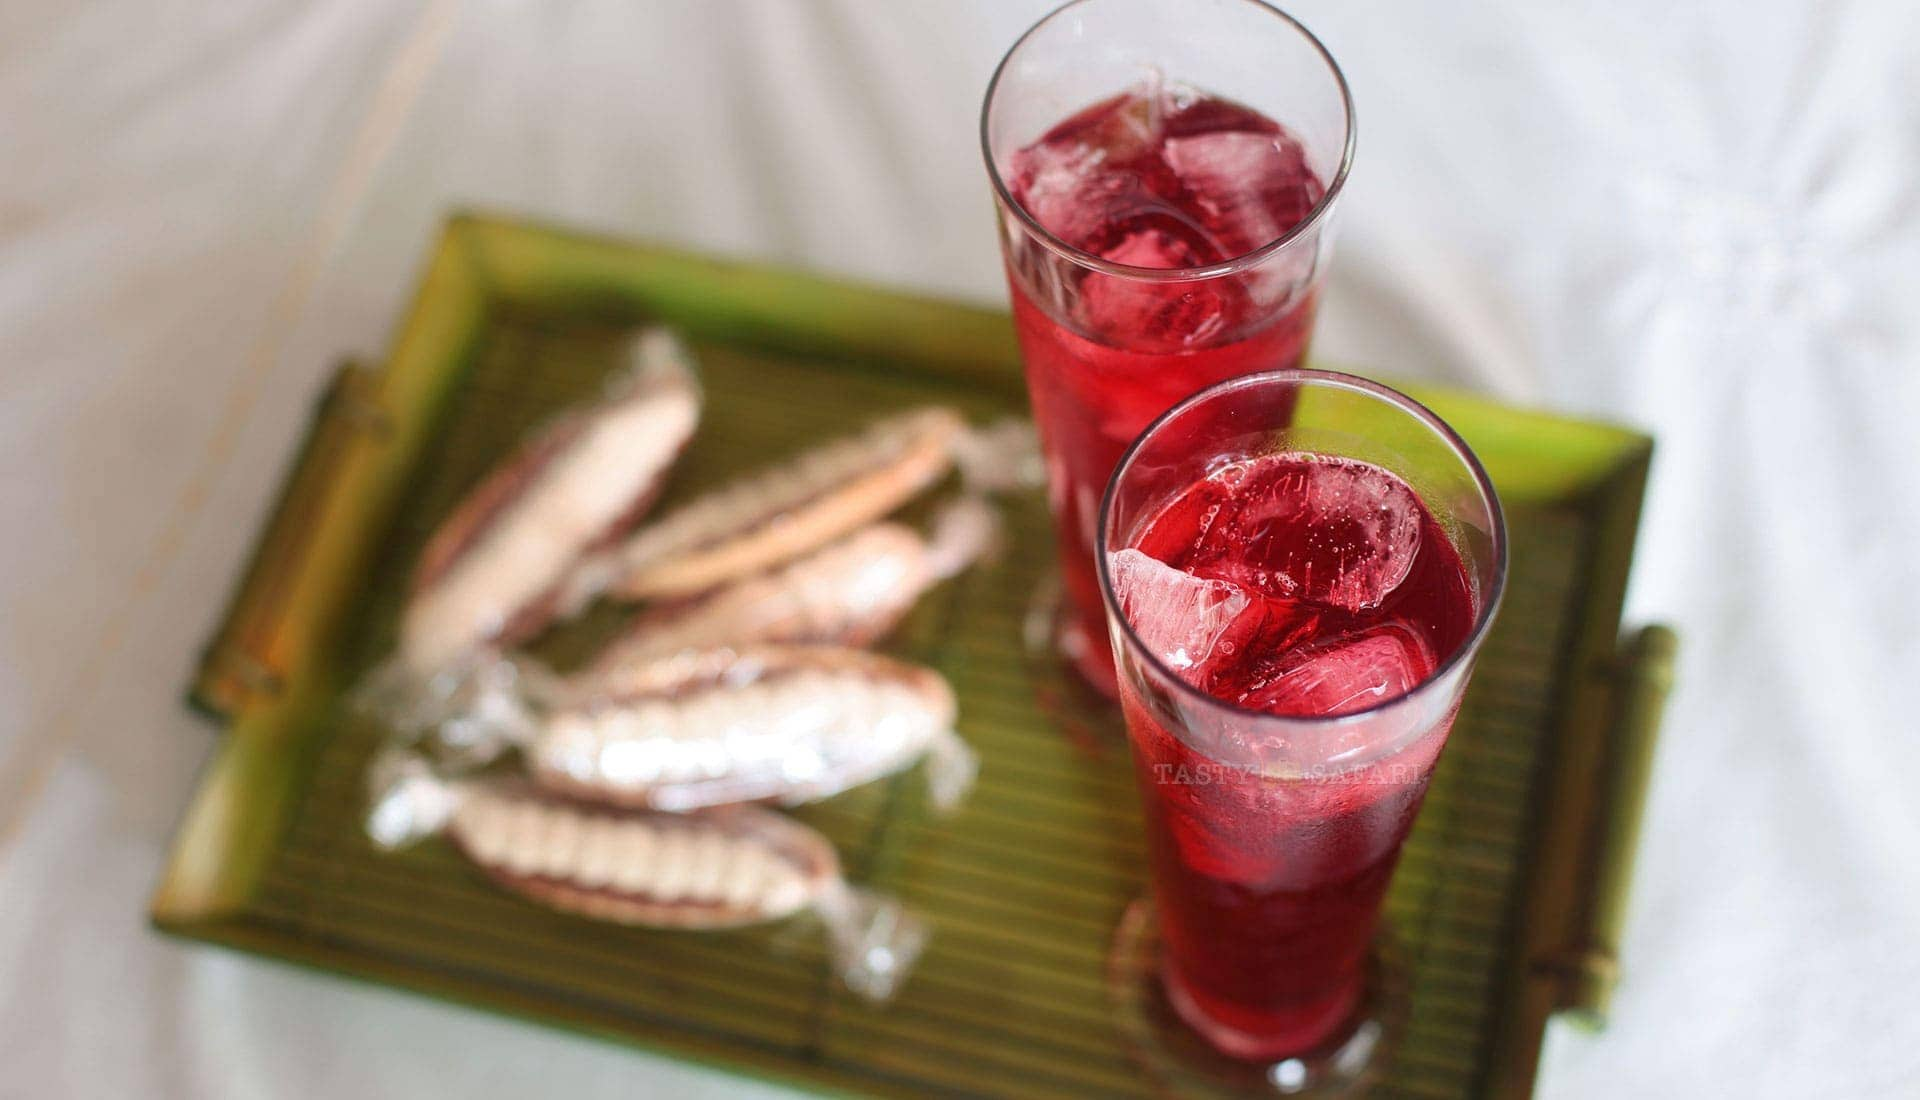 Hibiscus (Roselle) juice, inspired by the Negros Museum Cafe